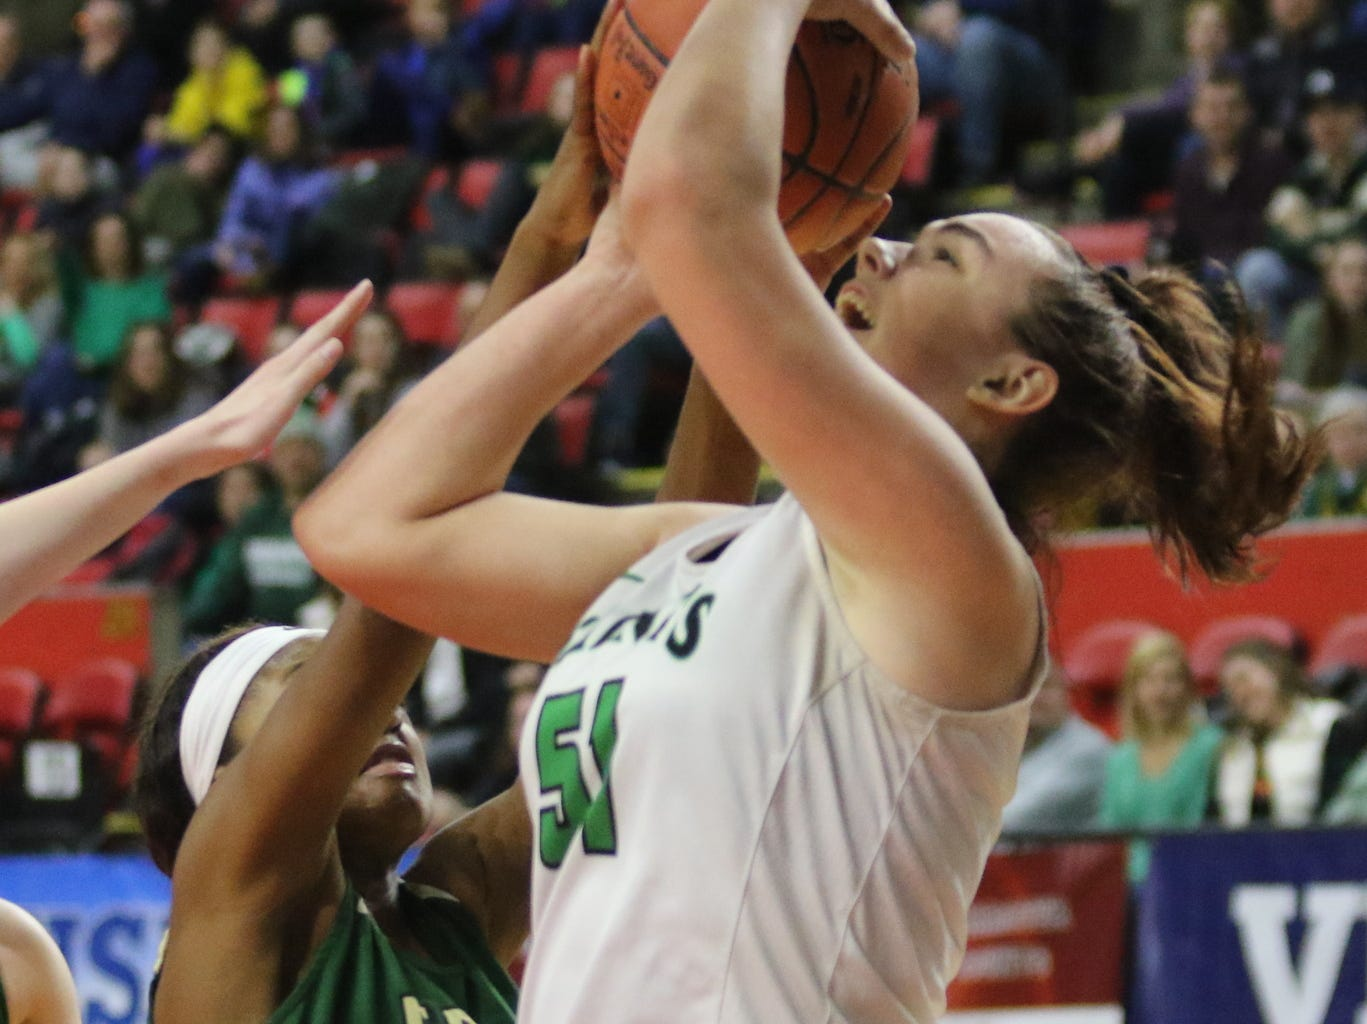 Binghamton Seton Catholic Central vs. Roosevelt in a Class A girls basketball state quarterfinal March 10, 2019 at Floyd L. Maines Veterans Memorial Arena in Binghamton.